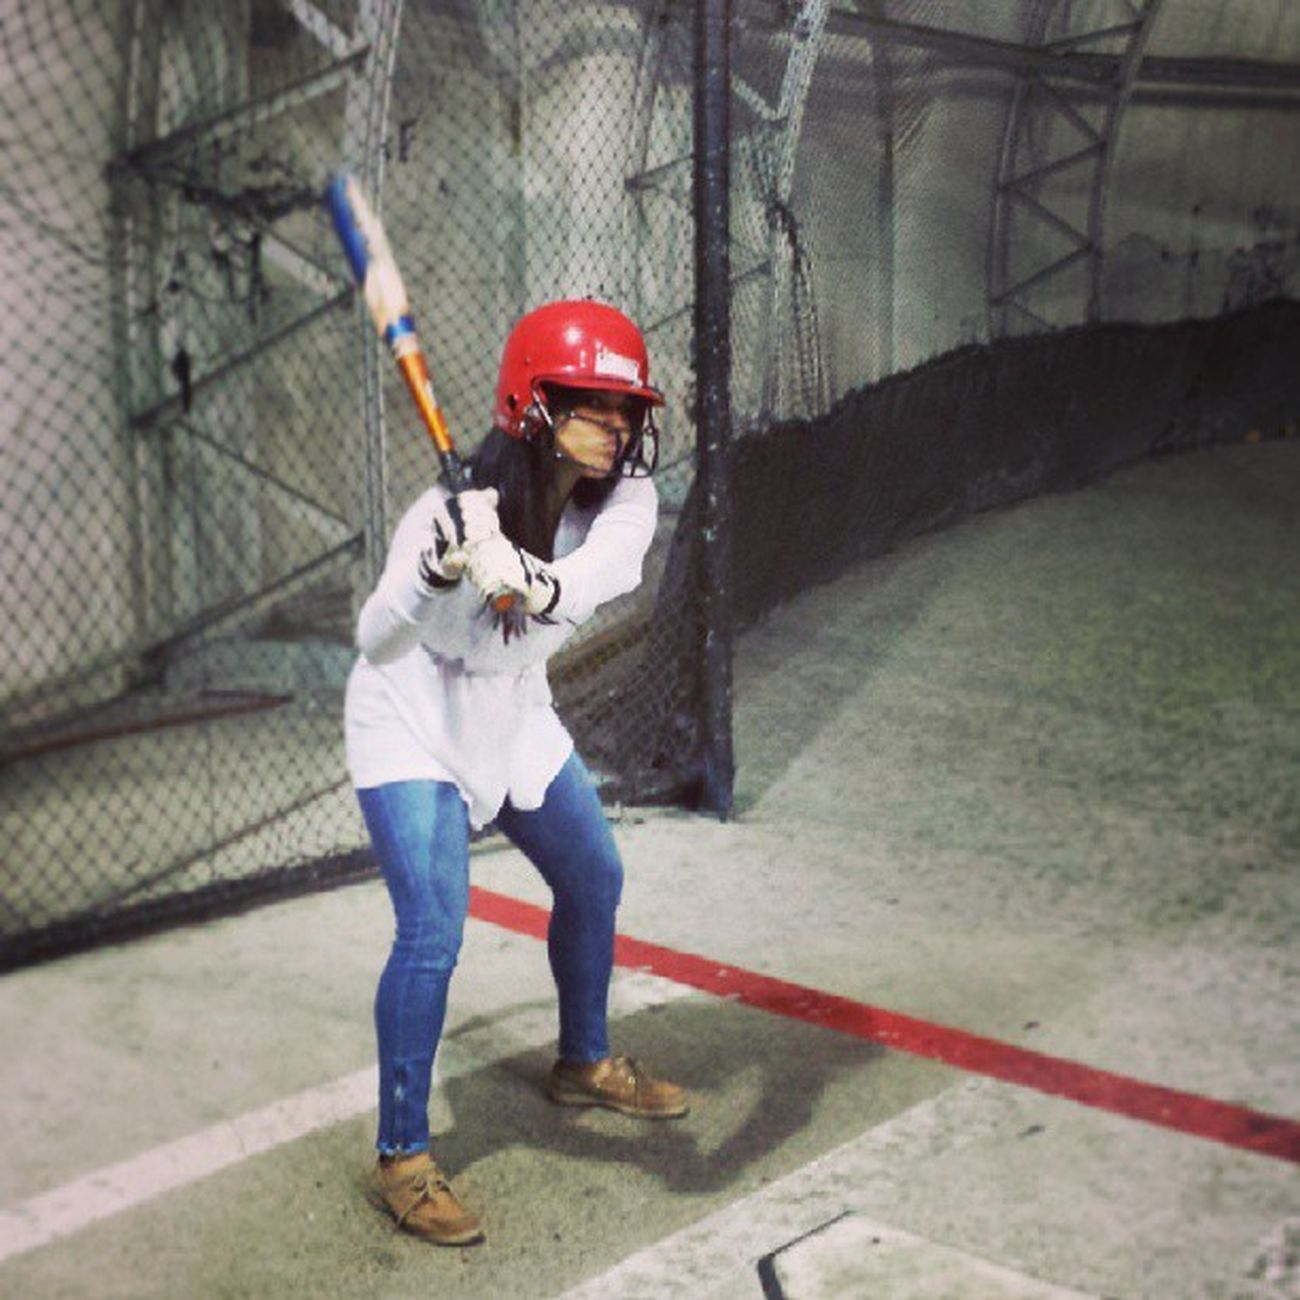 Battingcages Softballnight